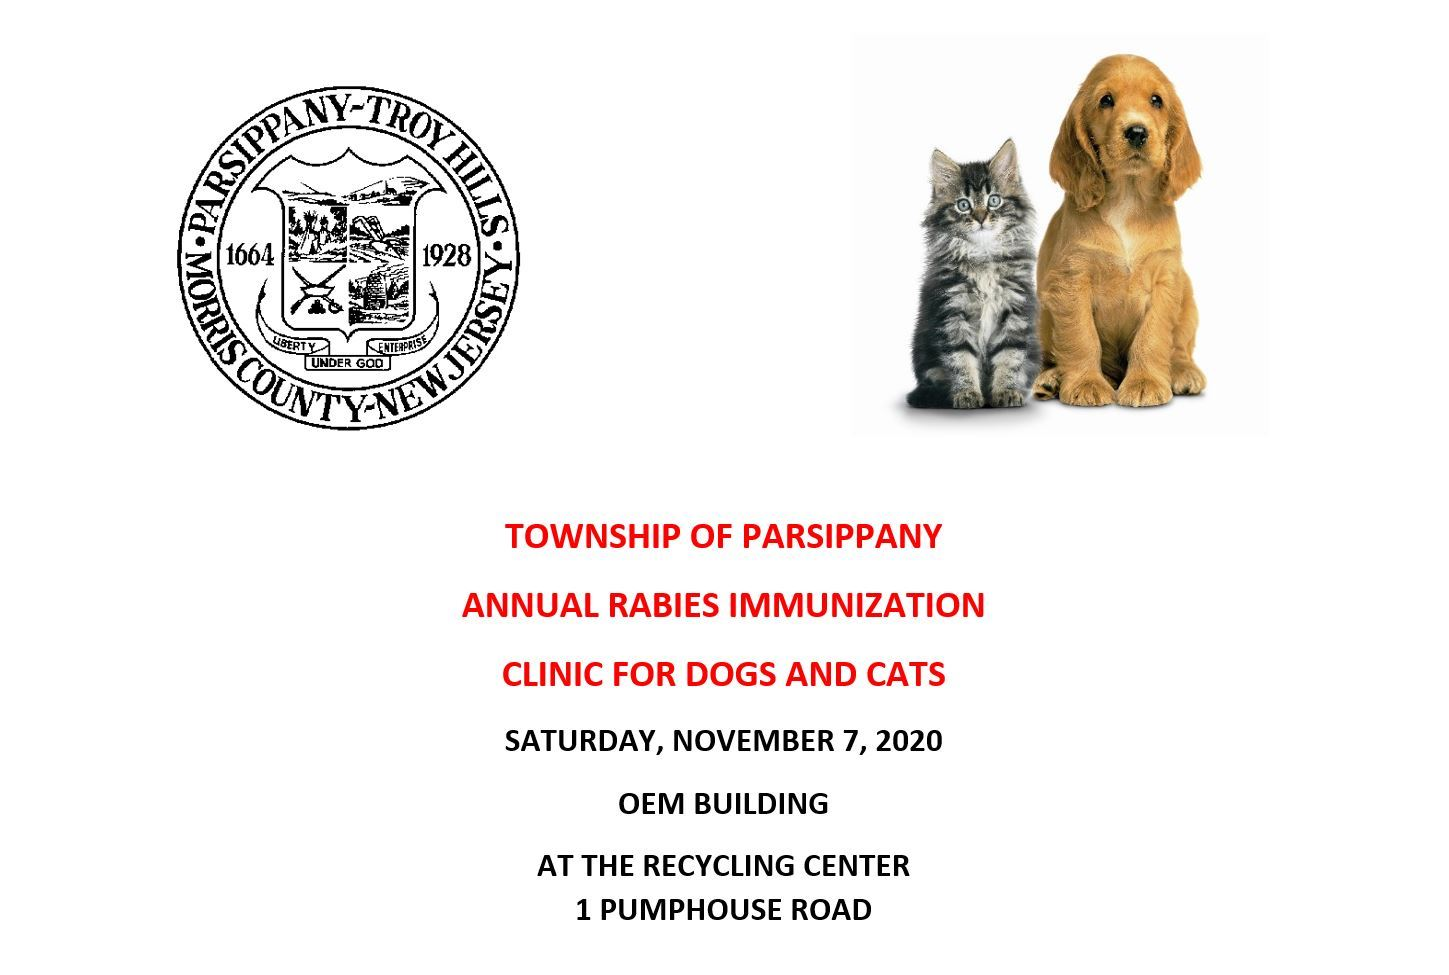 Dog and Cat Immunization November 7